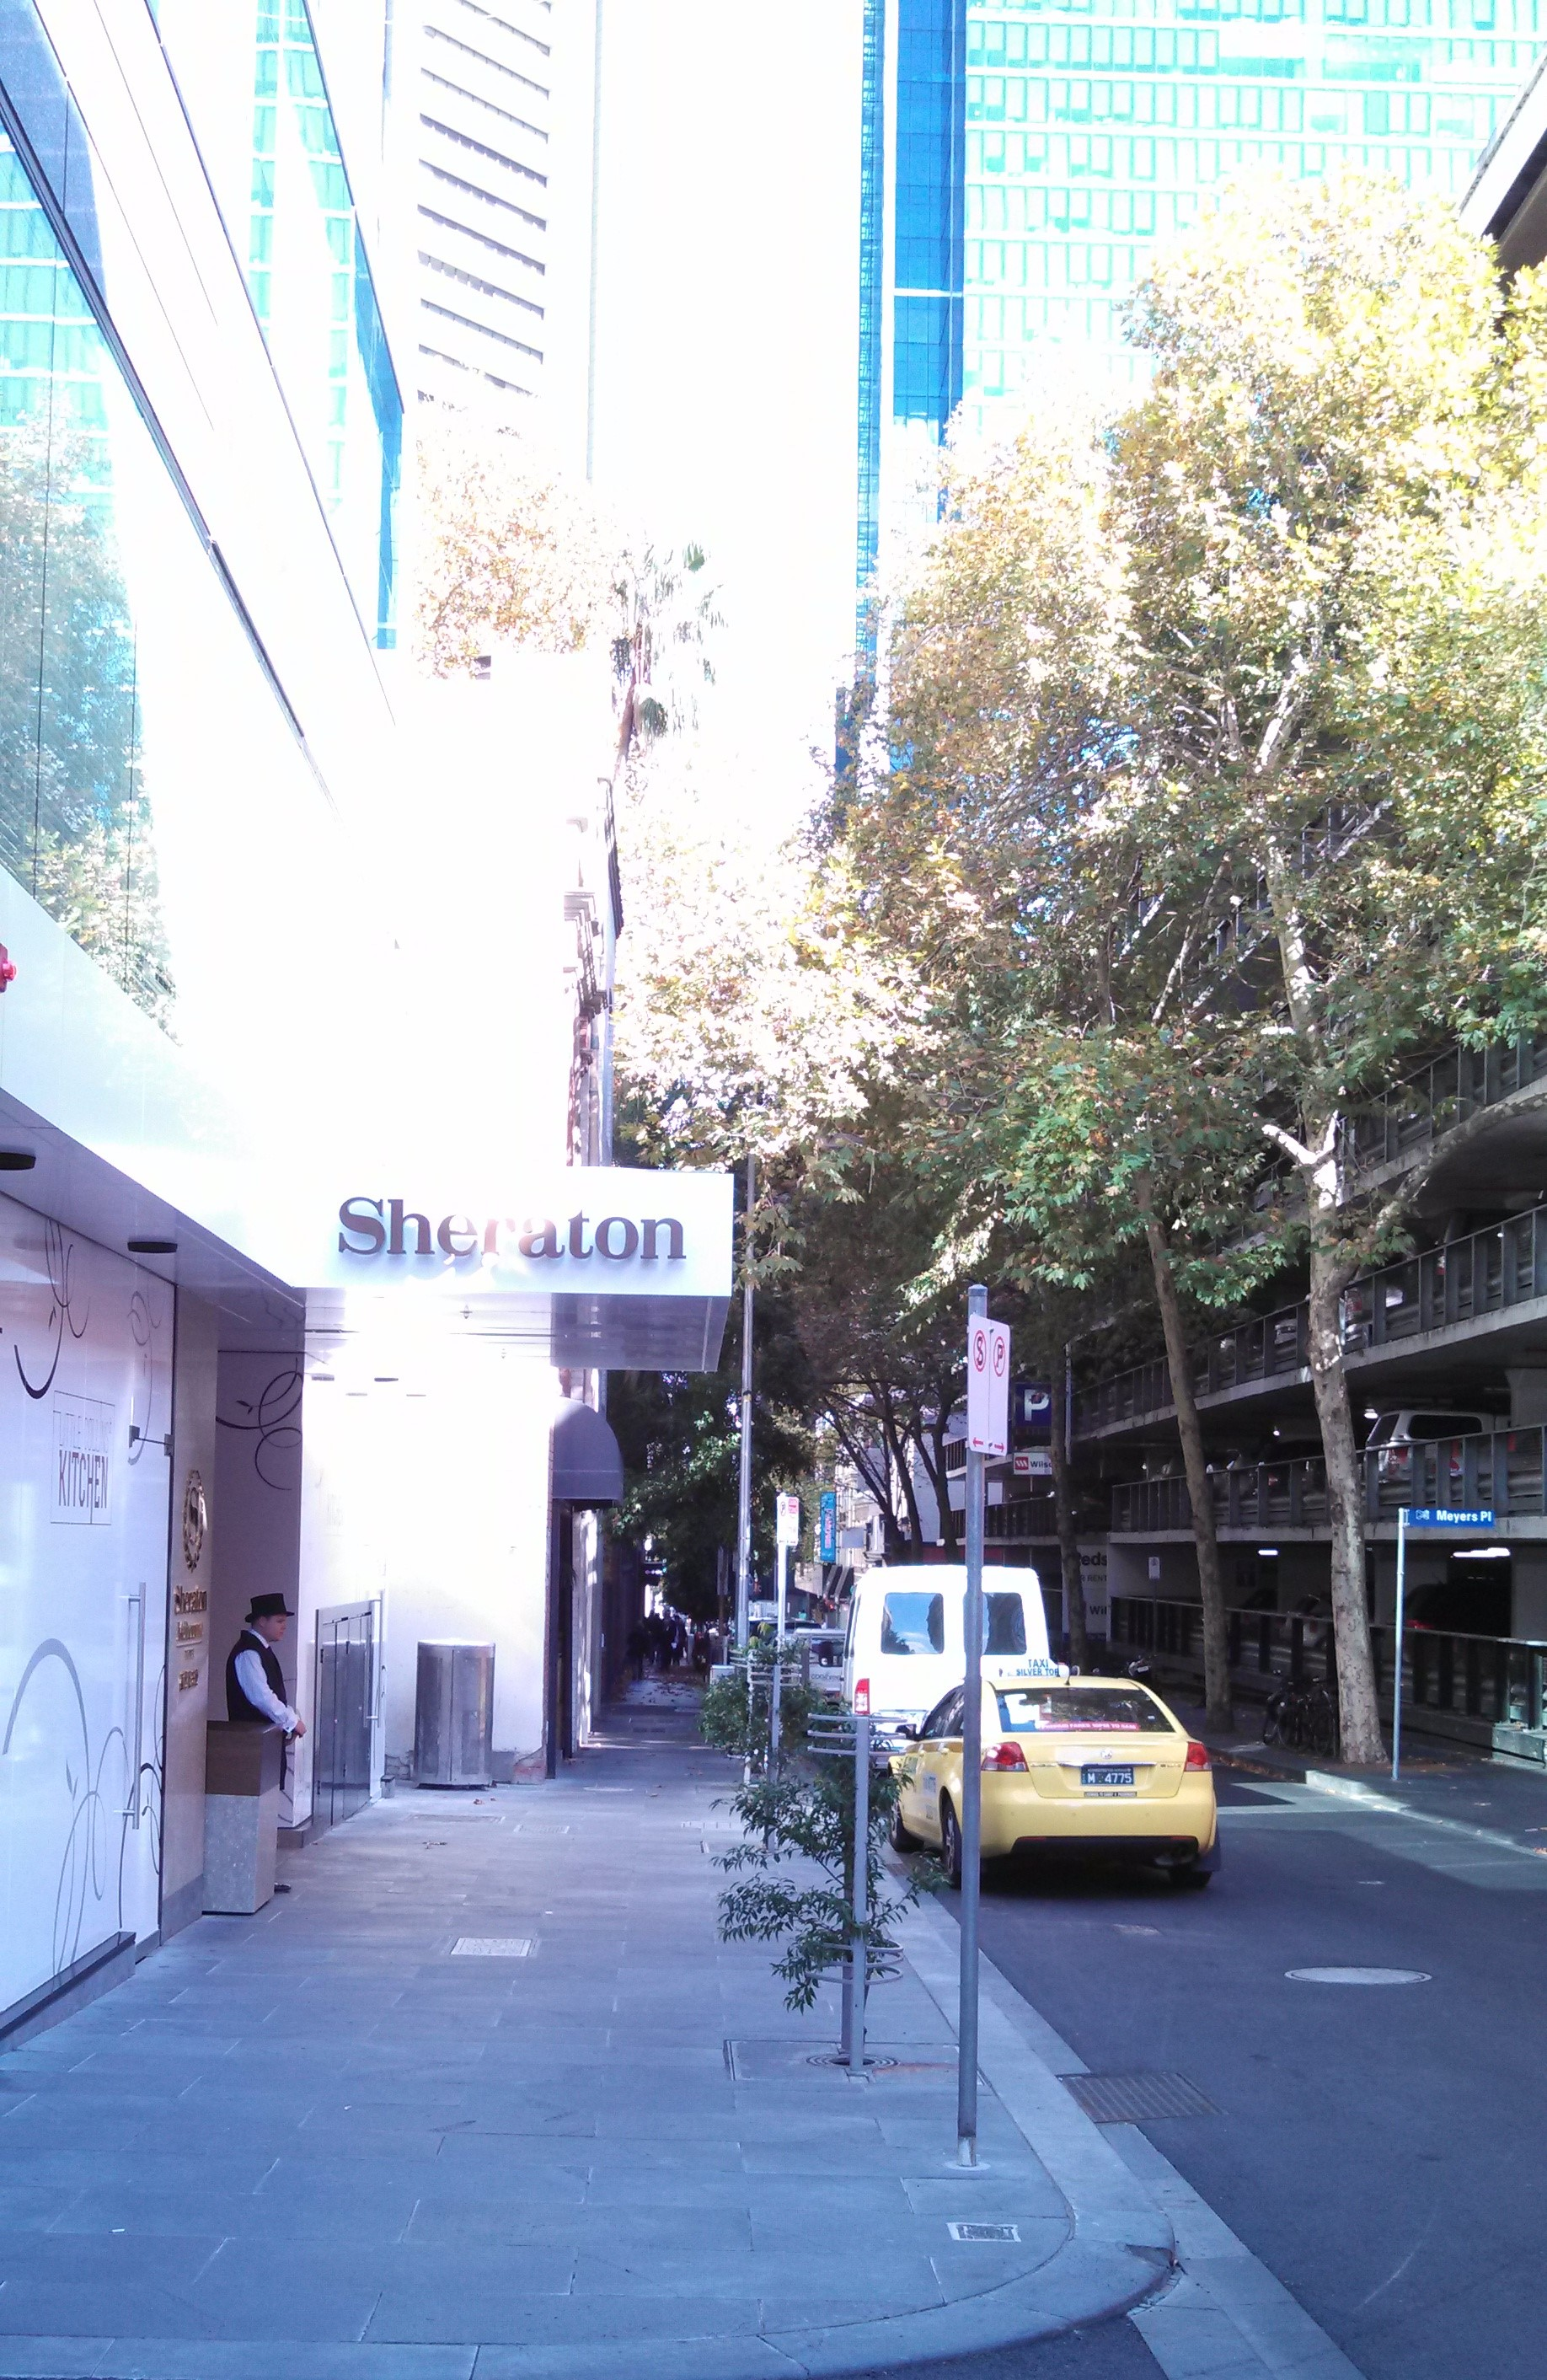 Sheraton Hotel in Melbourne - click to see an enlarged version of this image